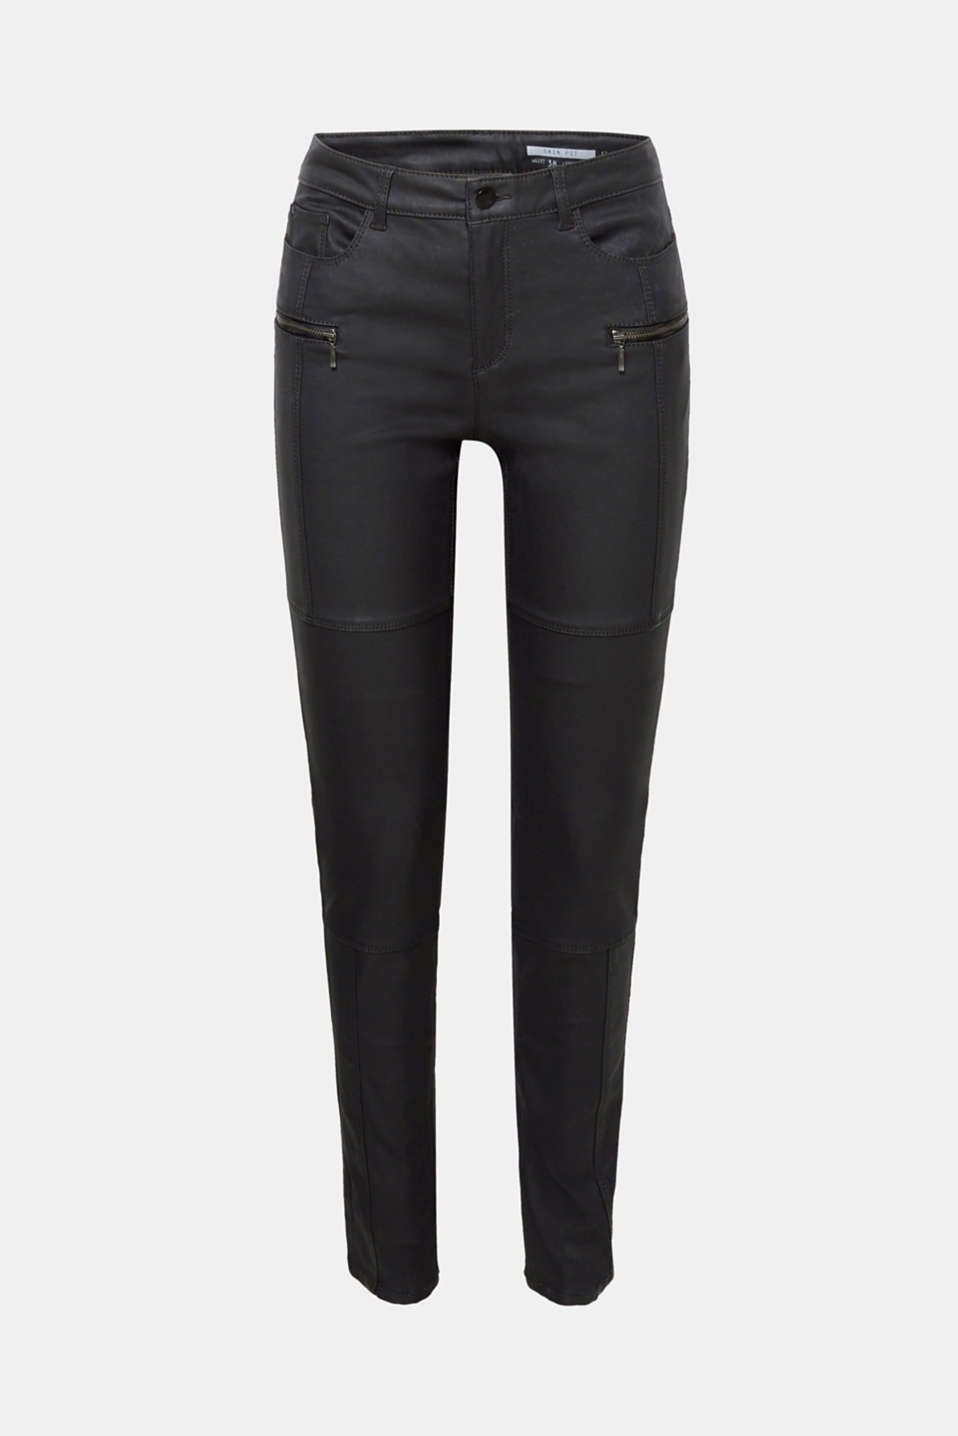 These coated slim fit trousers with stretch for comfort and decorative biker-style zips create a very cool look!